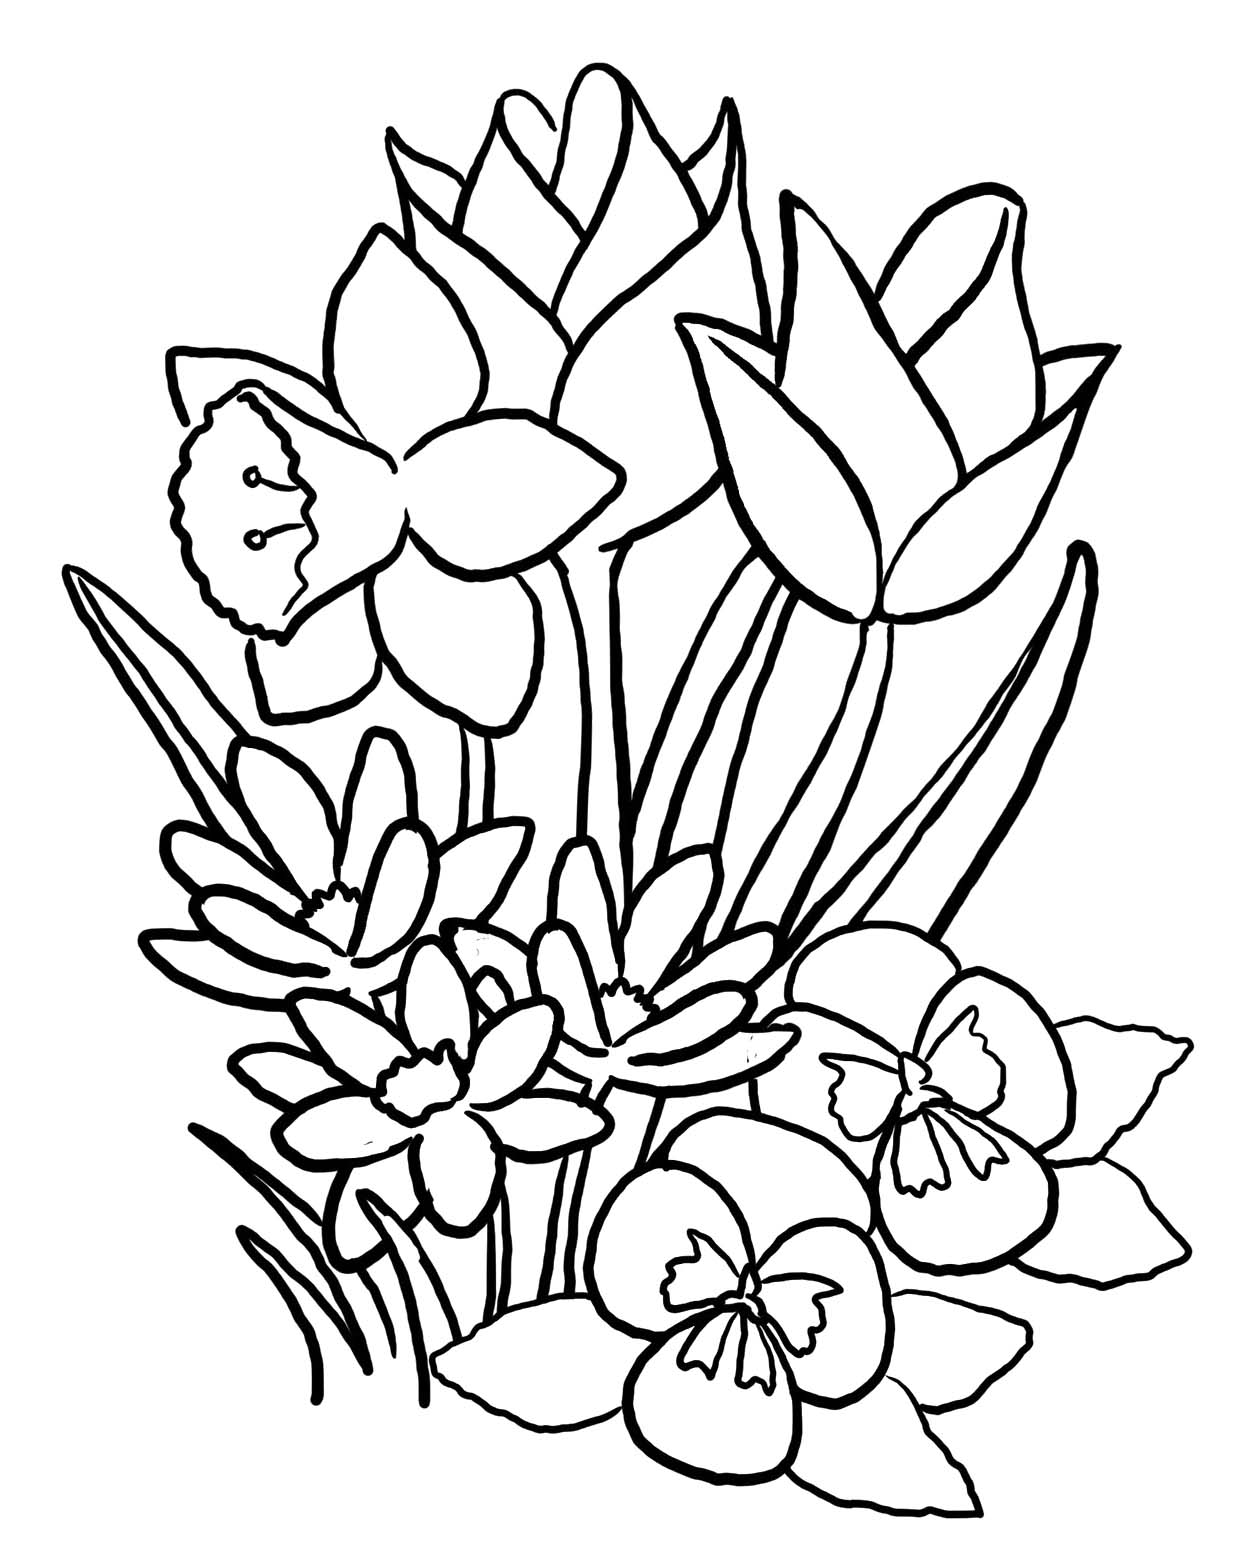 girls planting flowers coloring pages - photo#29